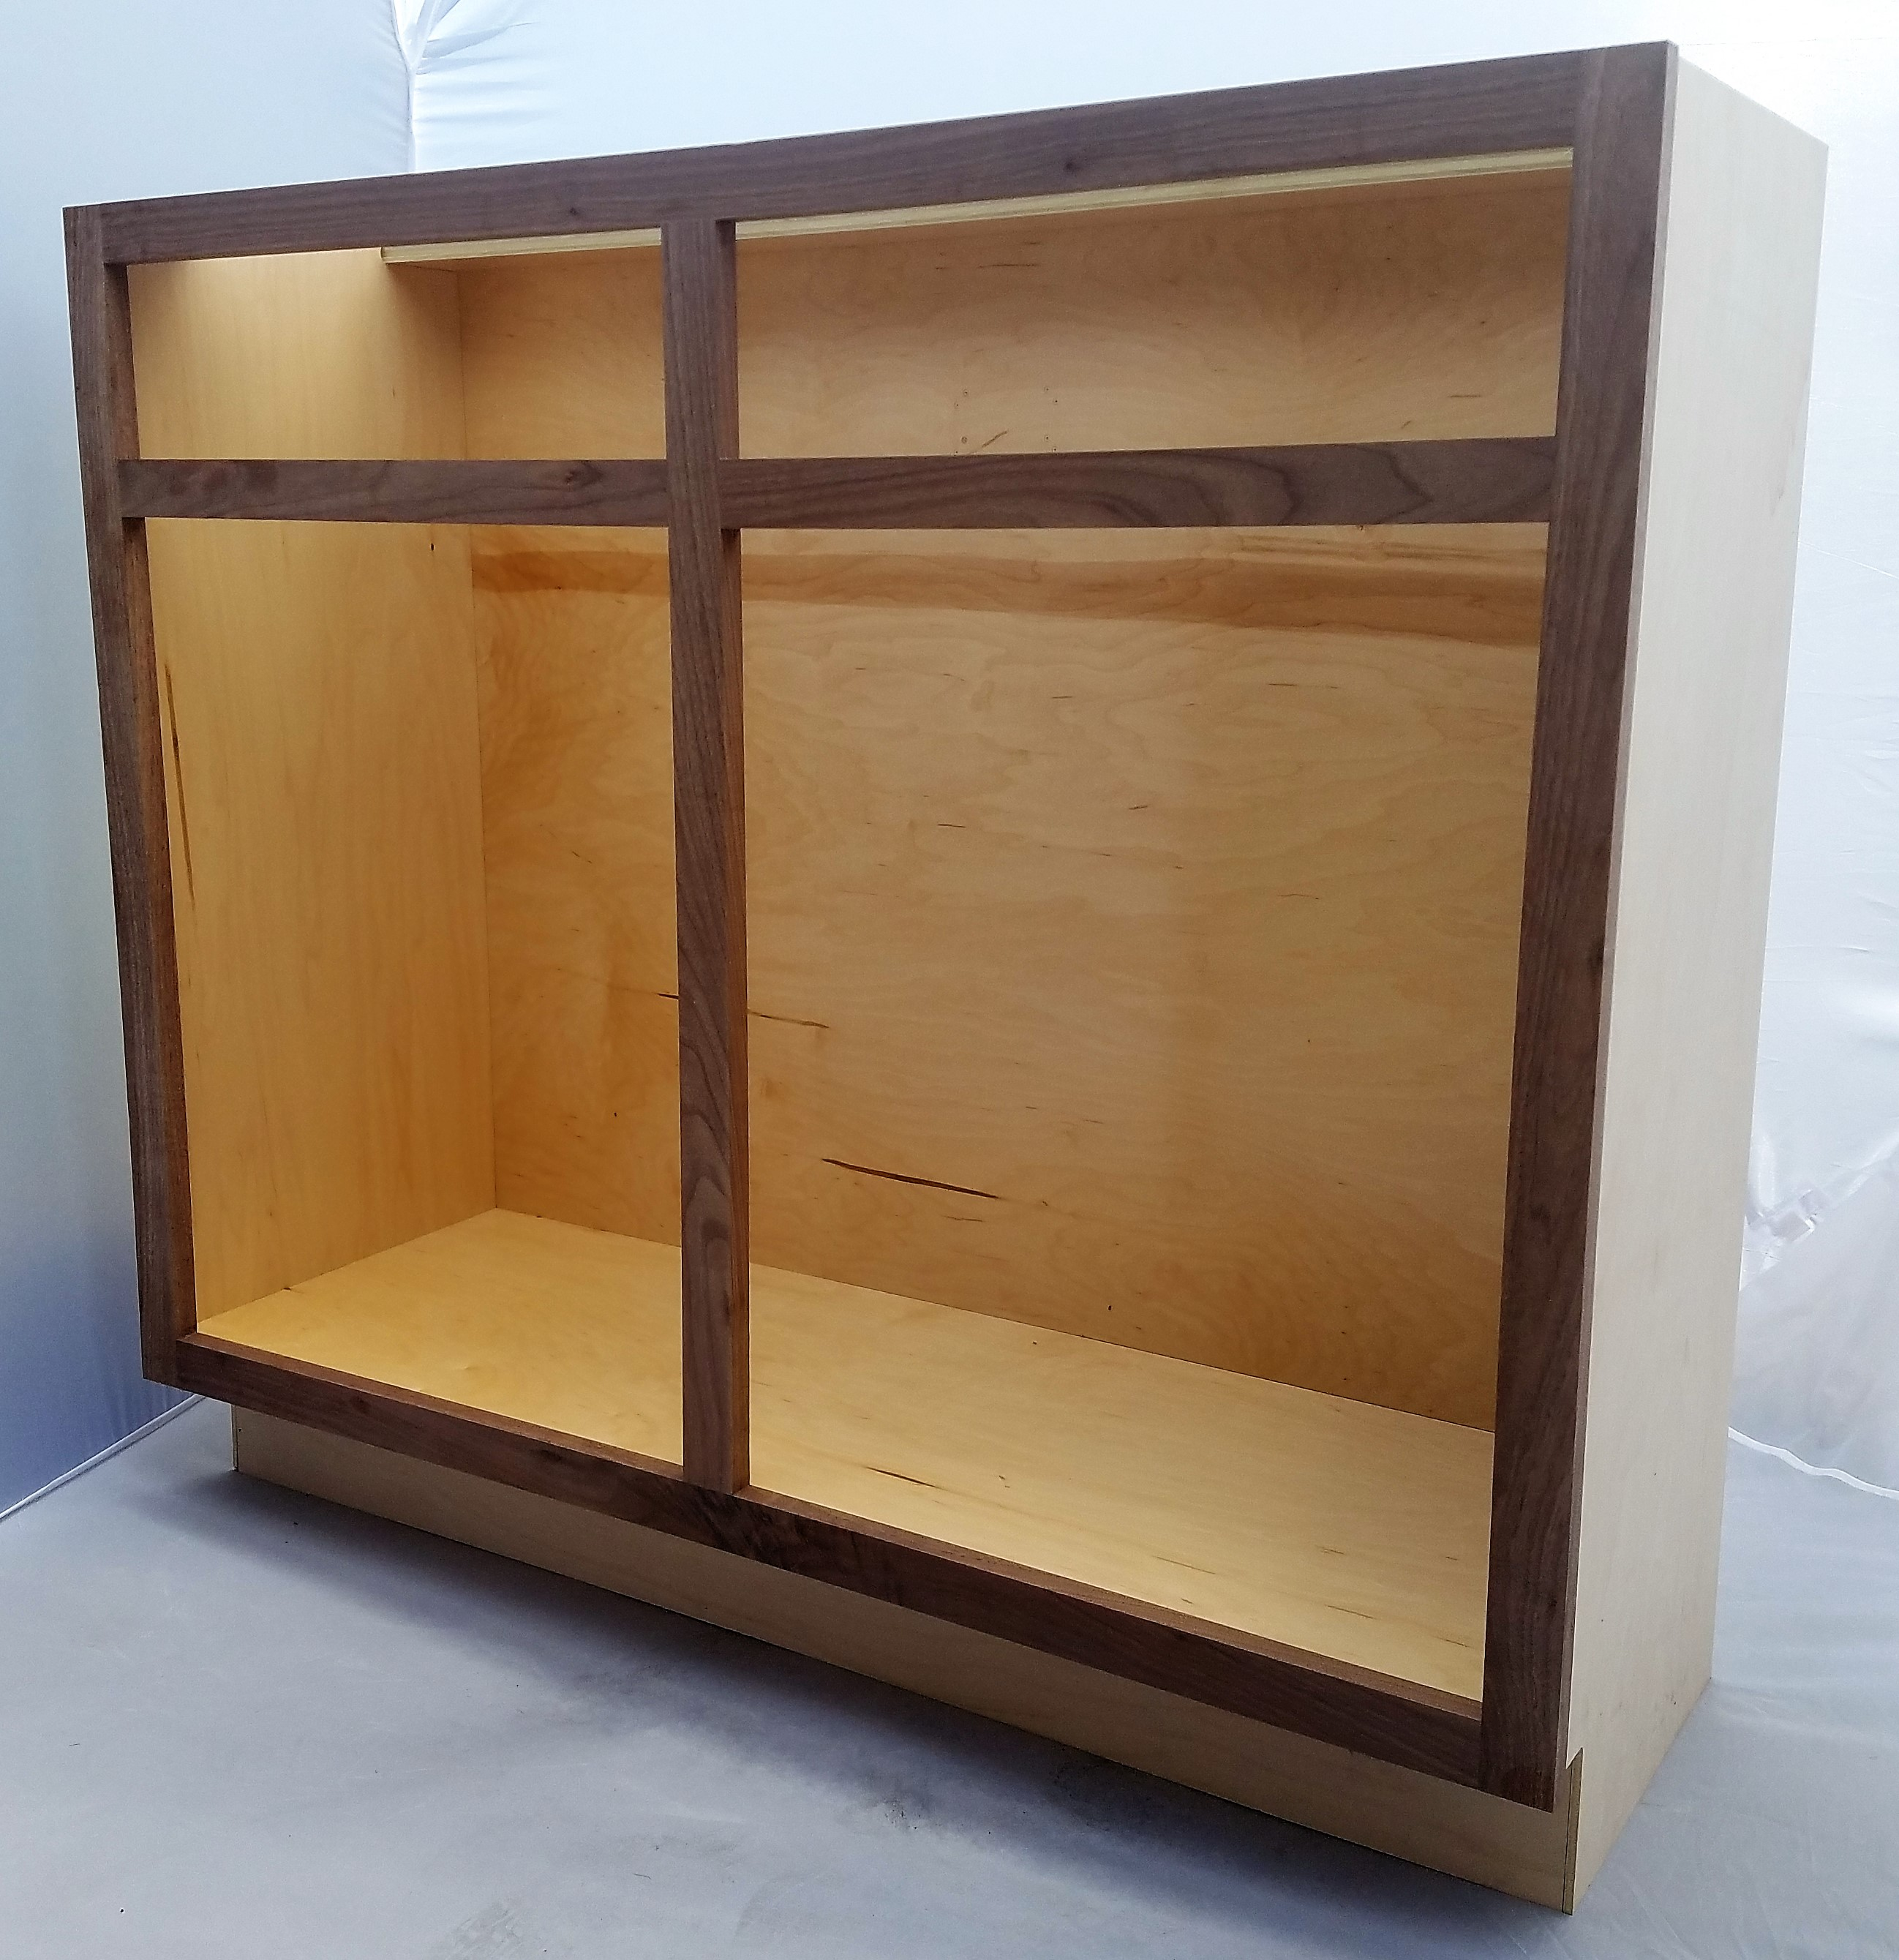 Cabinet Construction Types